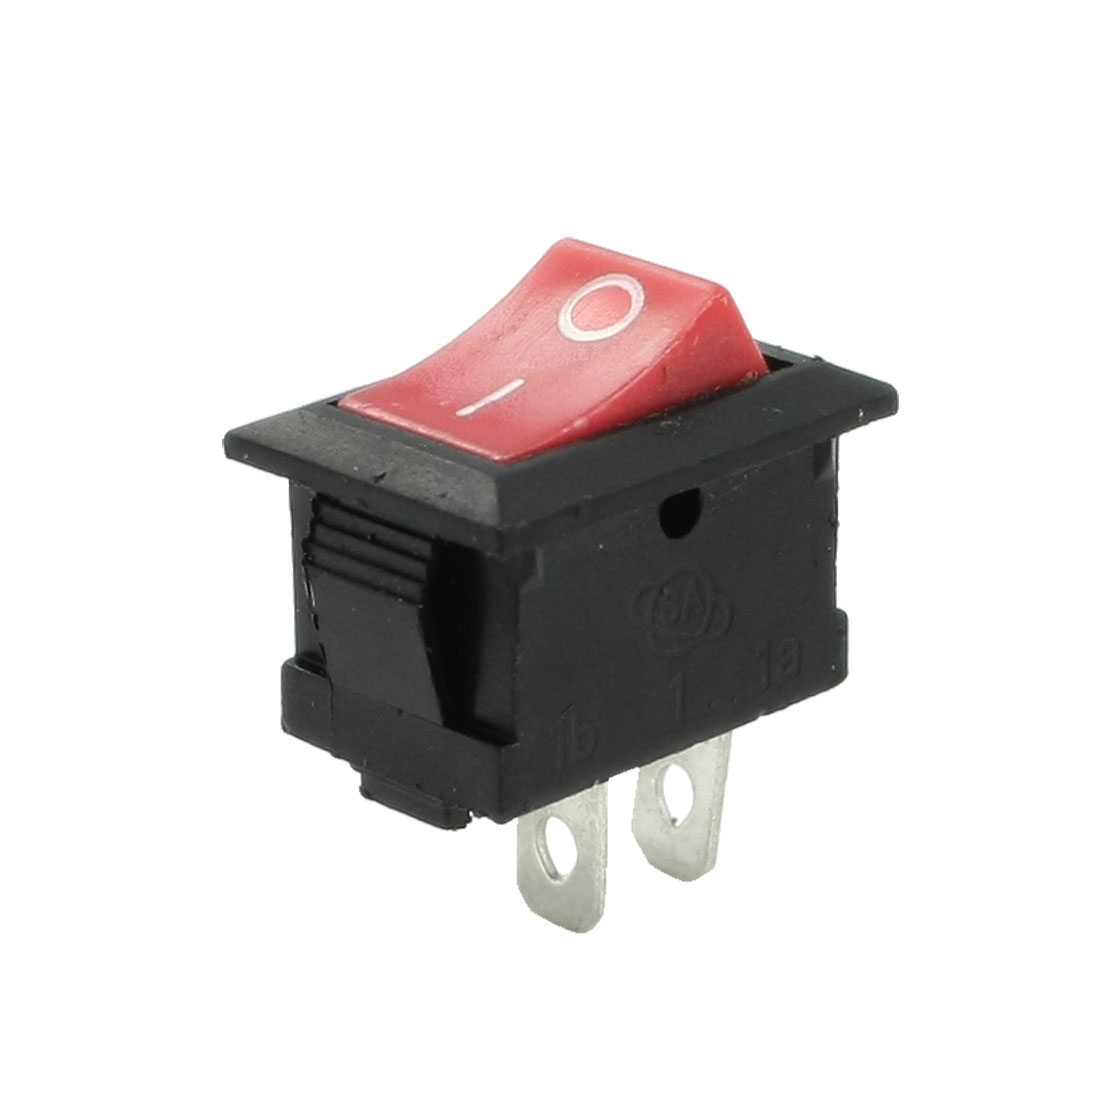 AC 250V 8A SPST 2 Terminal Red Button Snap in Boat Rocker Switch